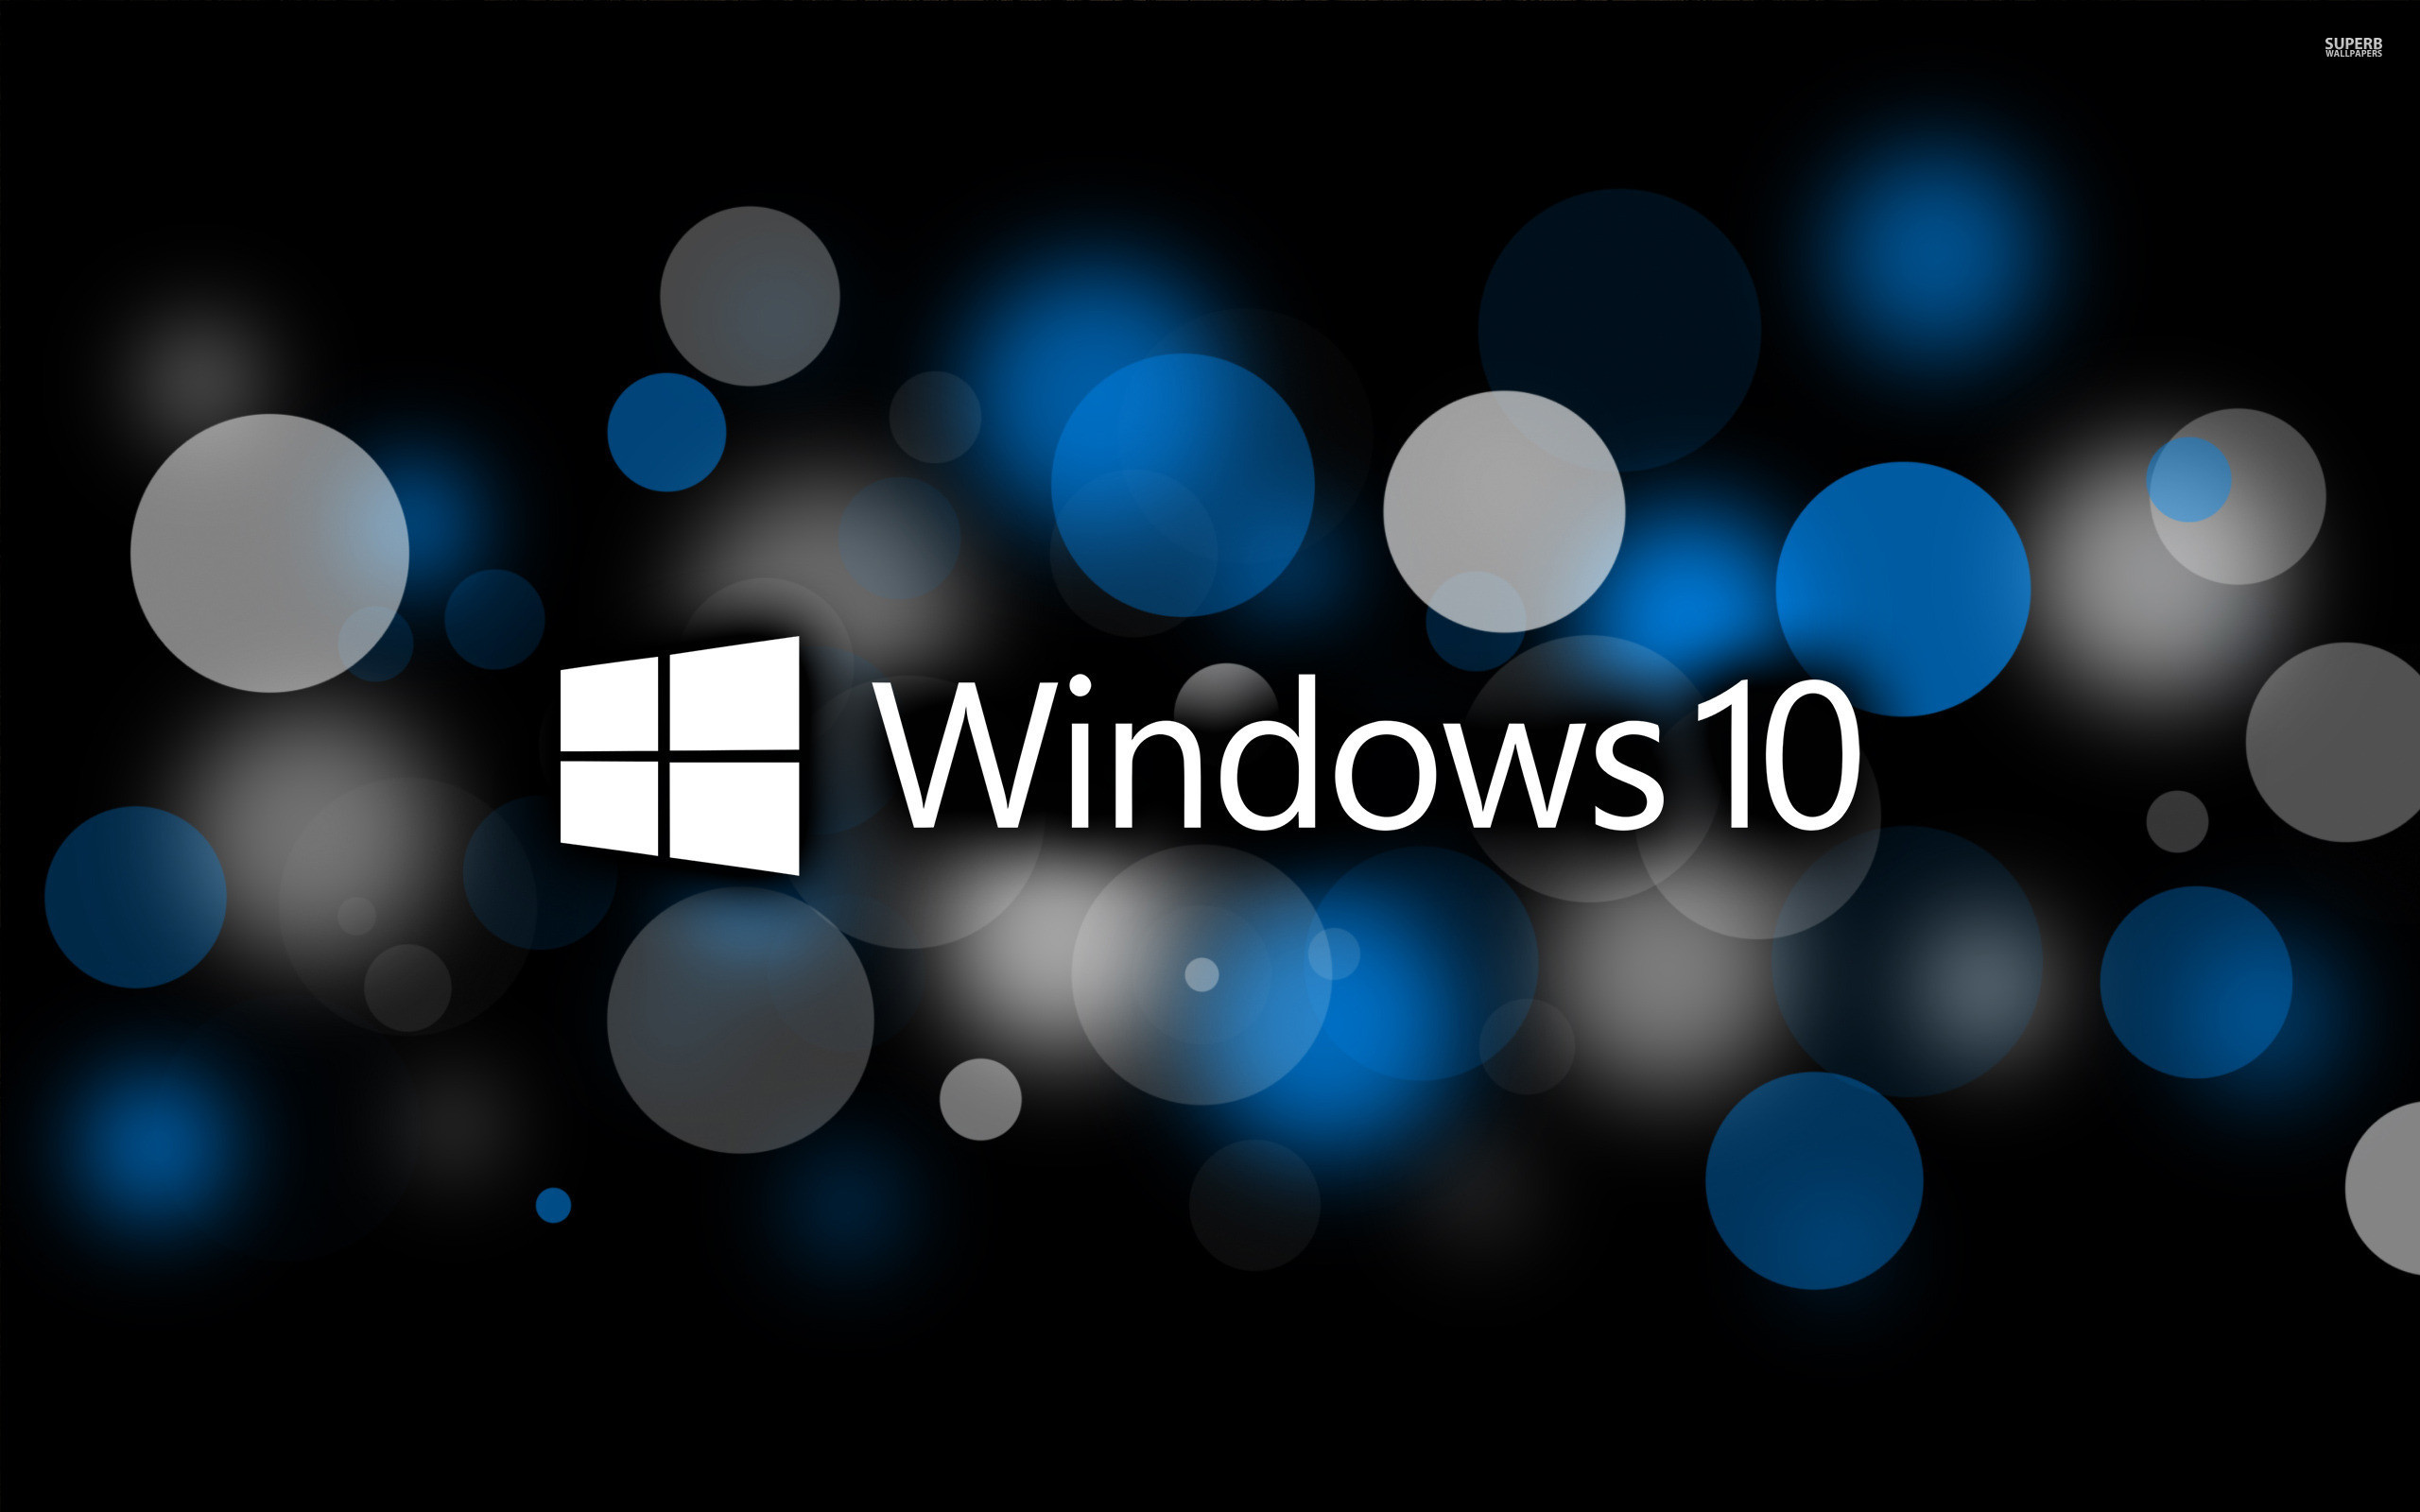 windows 10 background download koni polycode co